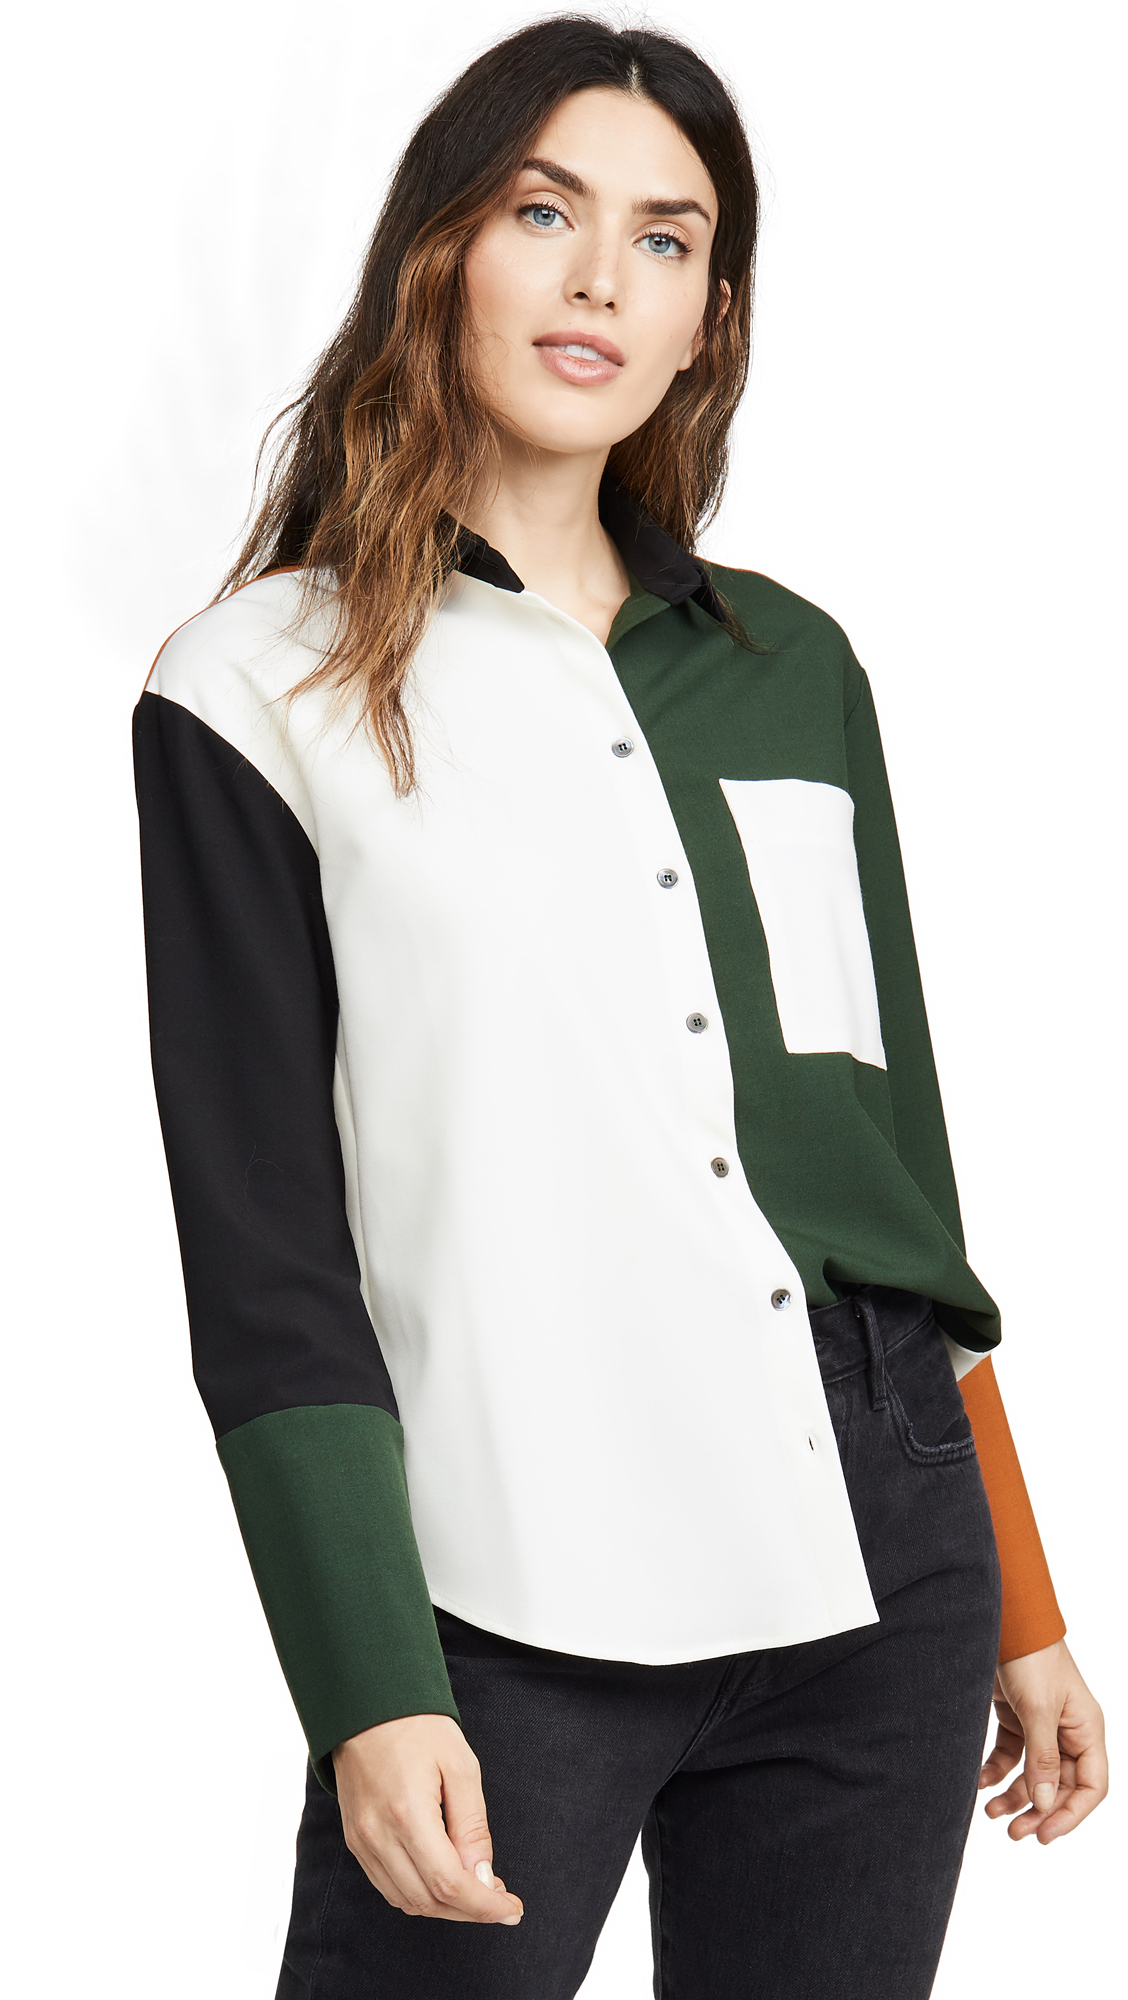 Chinti and Parker Colorblock Shirt – 40% Off Sale